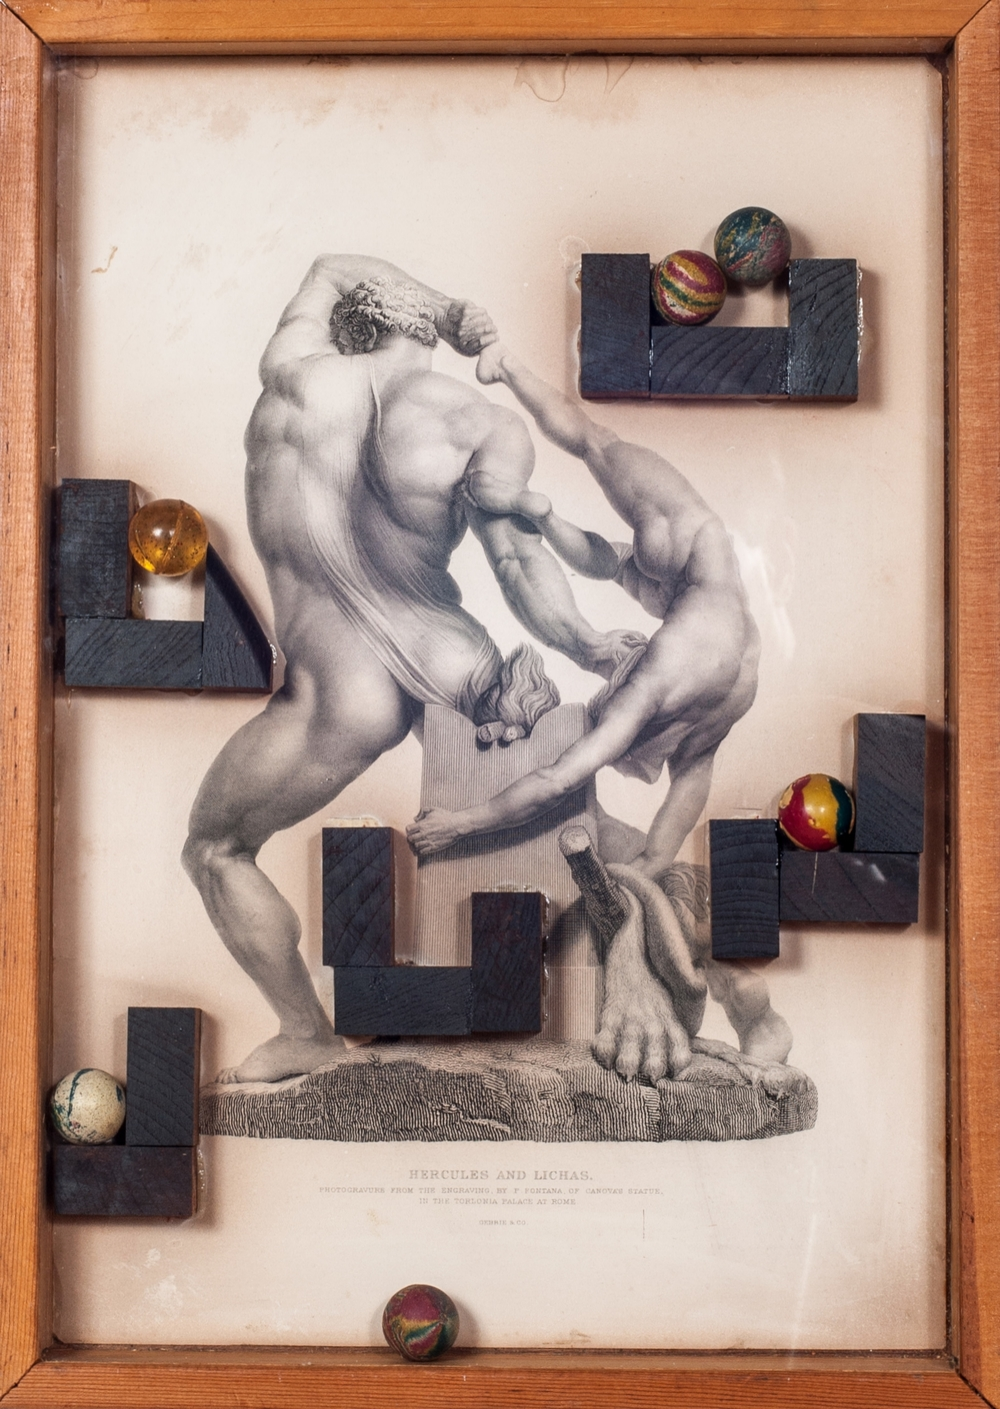 Game Box (Hercules and Lichas).     1984, box, 18.5 x 13.3 x 1.8 inches.